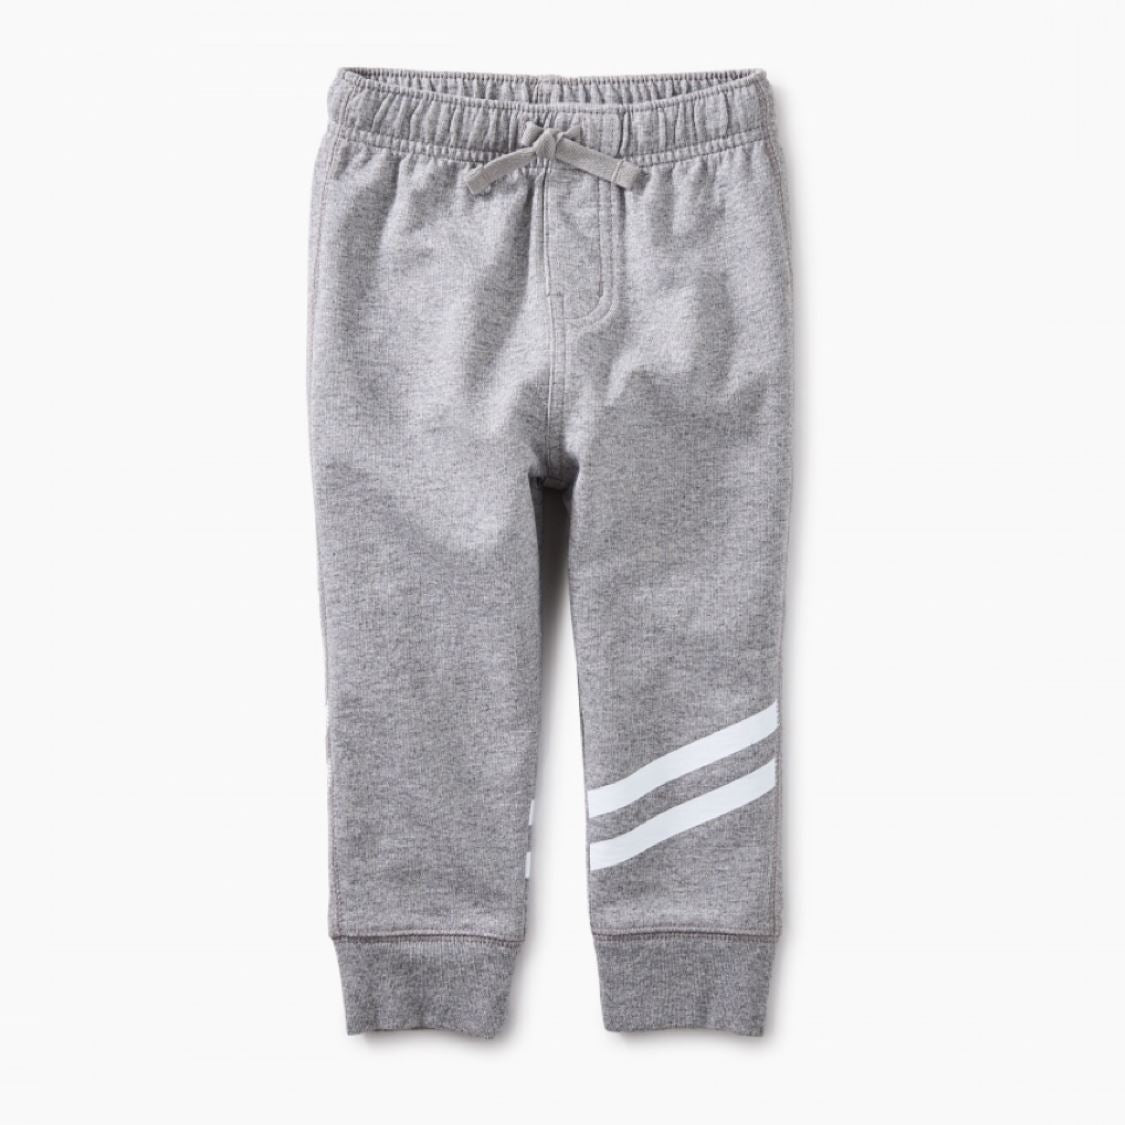 8F42200-014 Tea Collection Grey Sporty Stripe Baby Joggers Pants Tea Collection